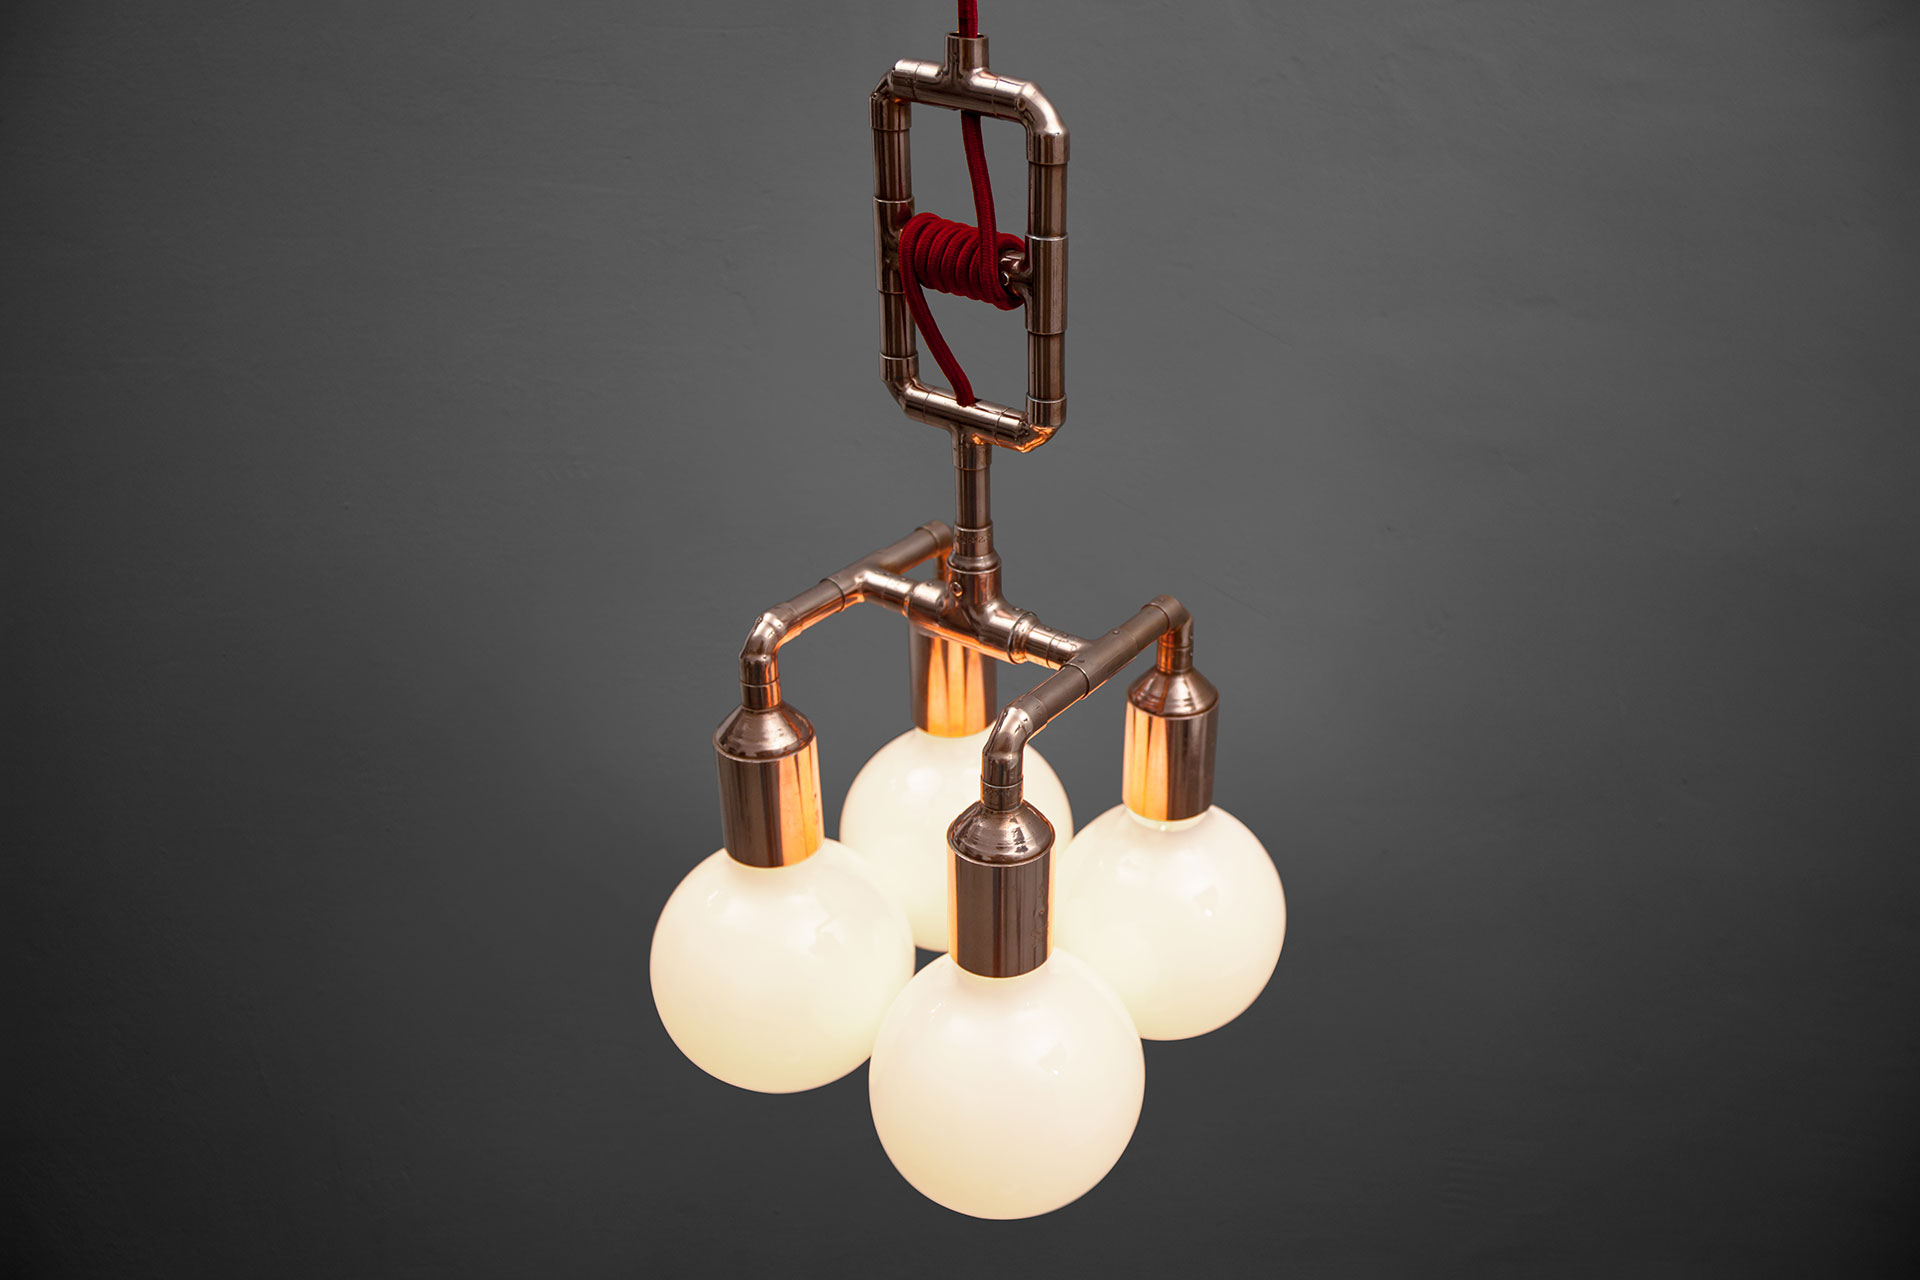 Steampunk style ceiling lamp in copper with adjustable height